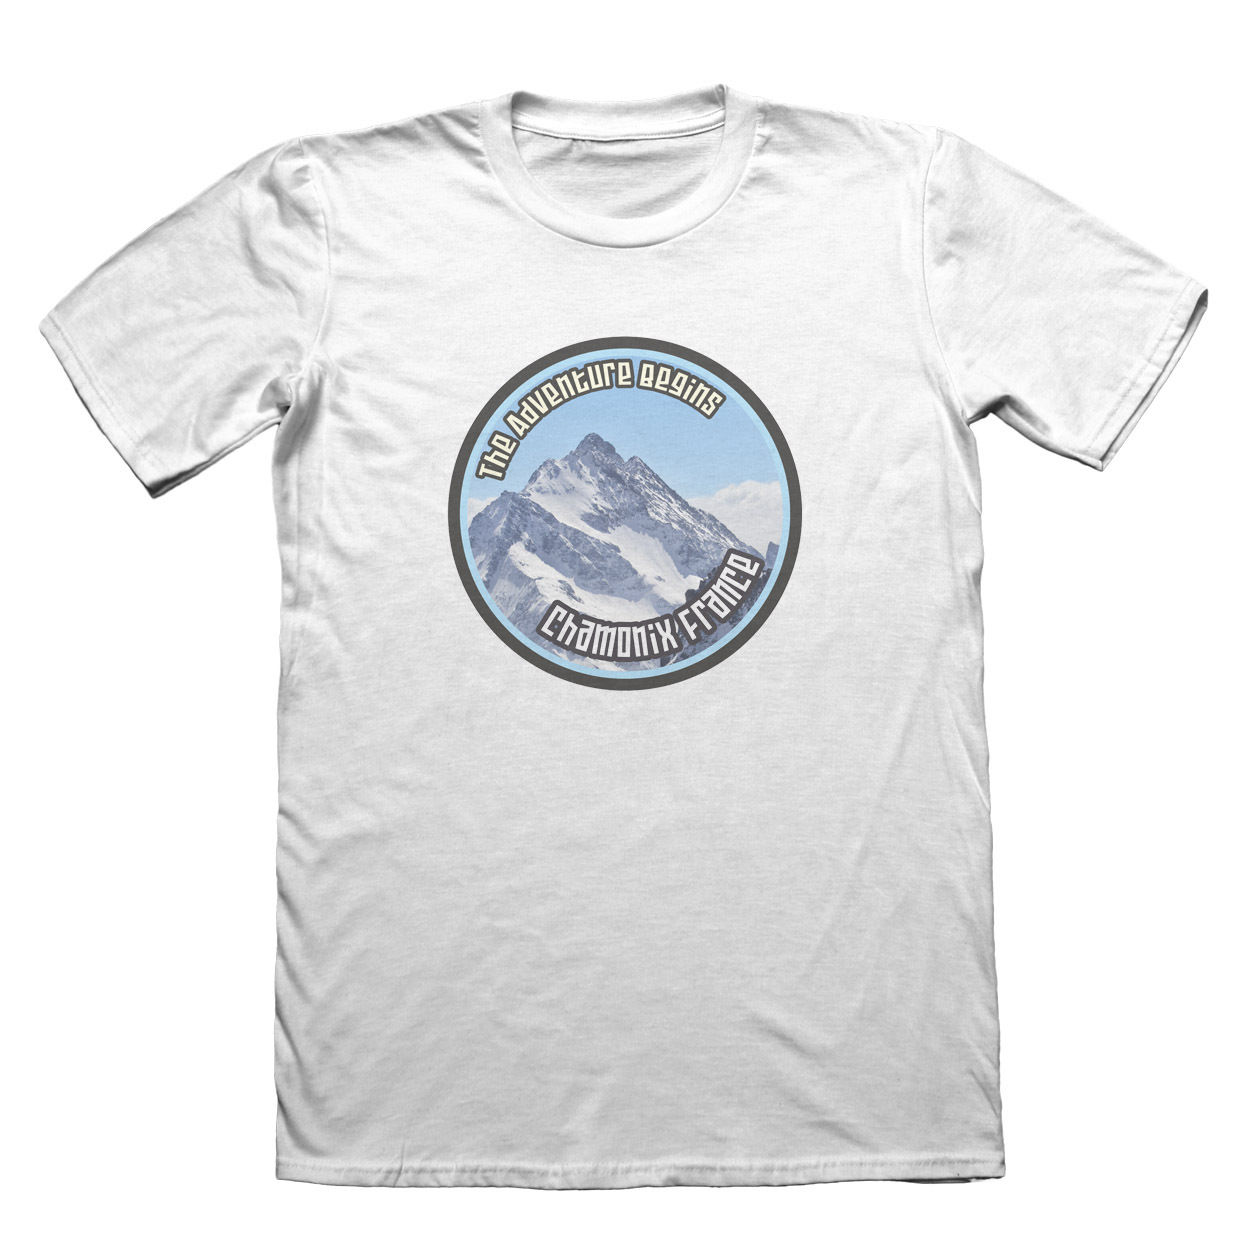 Chamonix France T-Shirt - Mens Fathers Day Christmas Pride Of The Creature T-Shirts